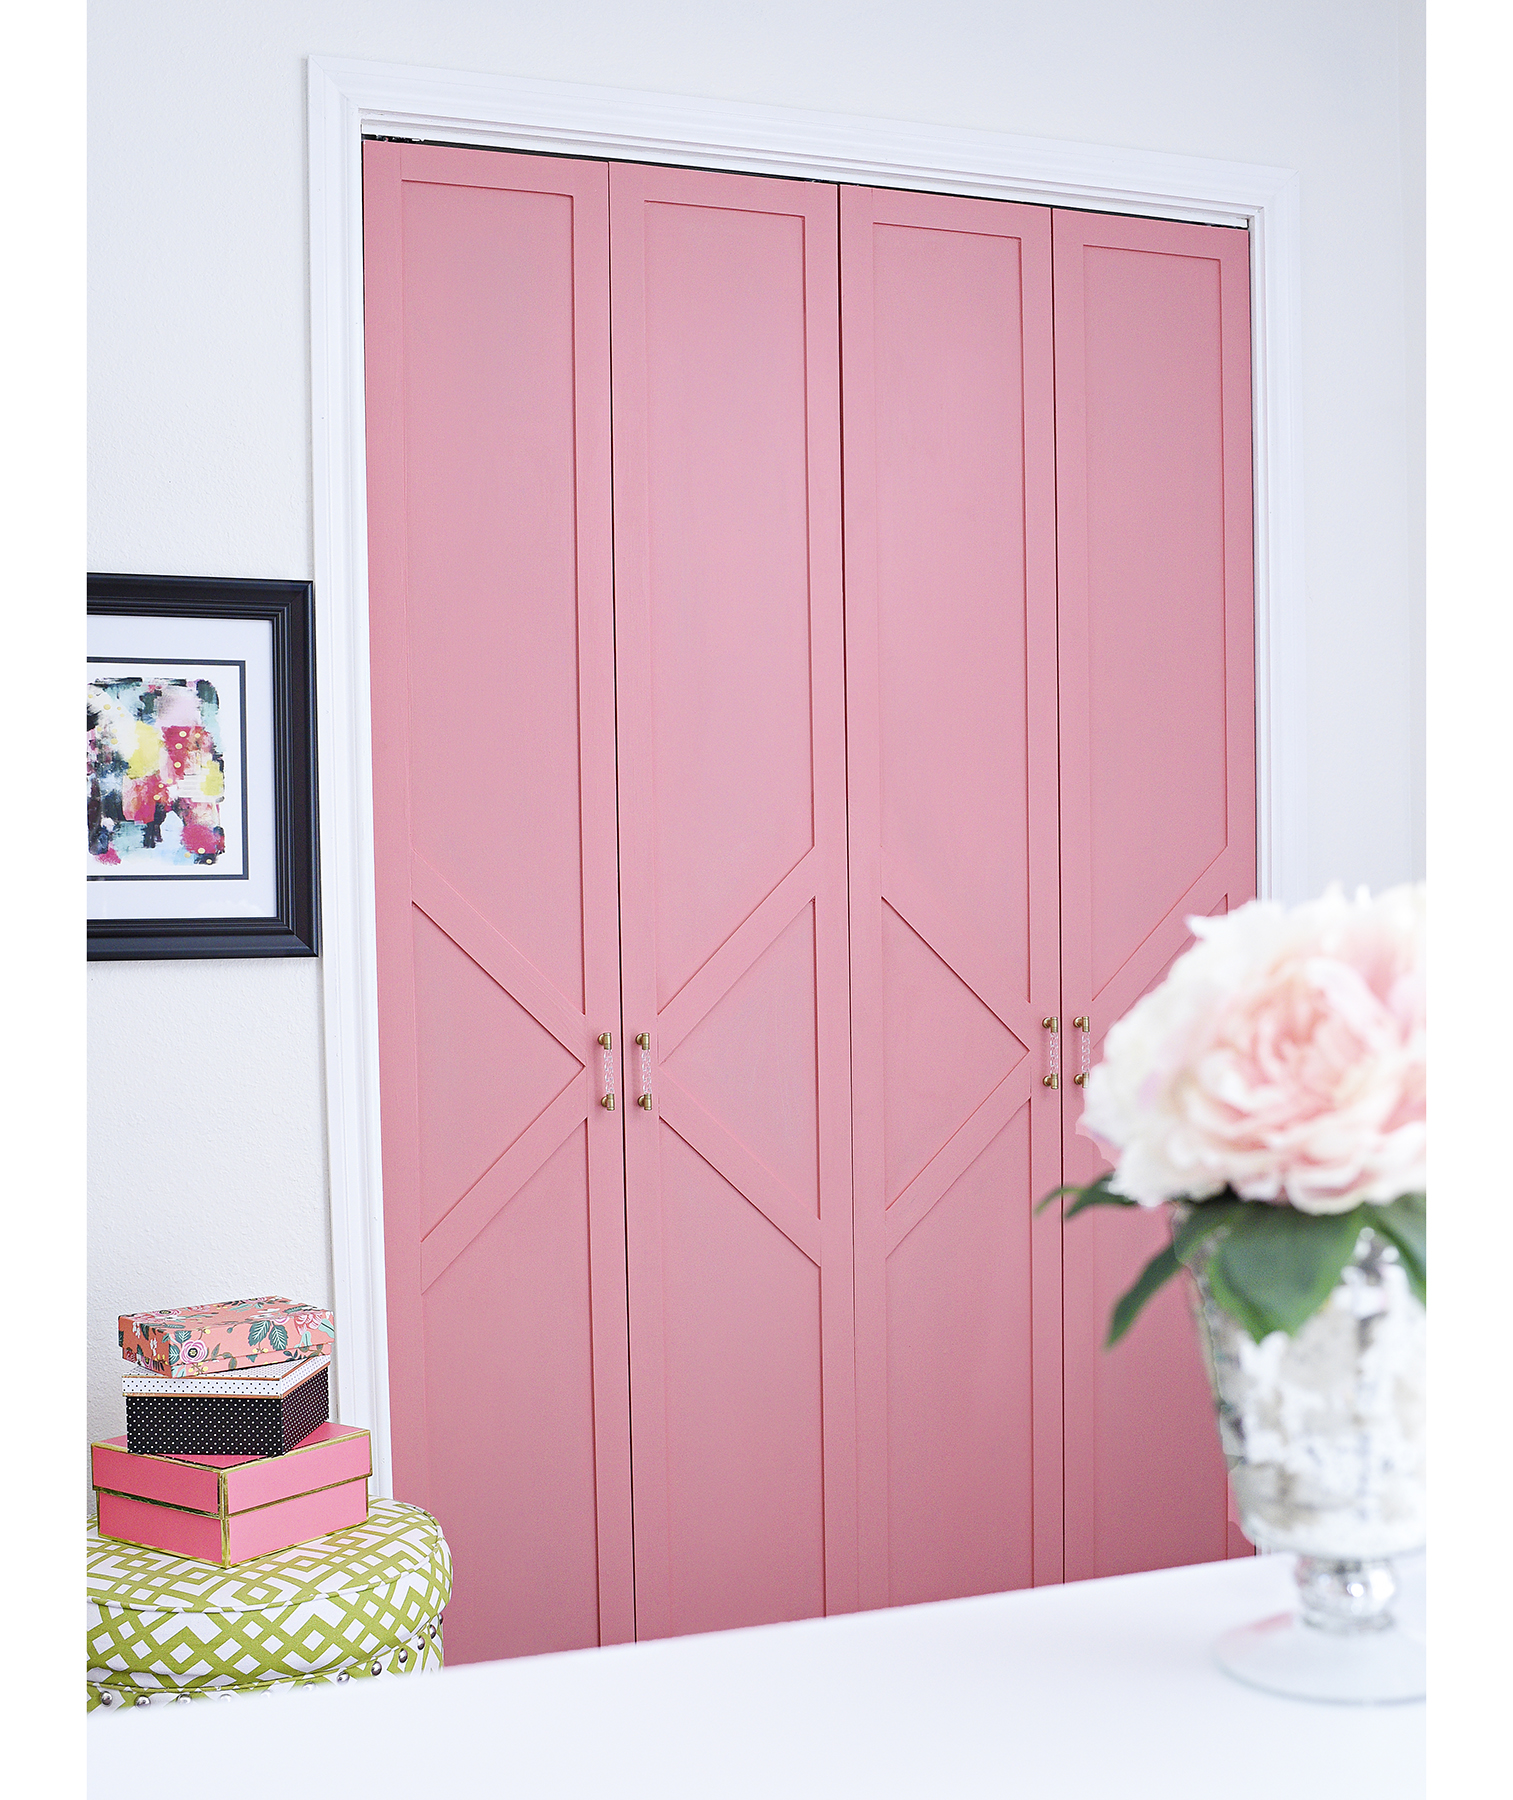 Painted closet doors with a decorative trim